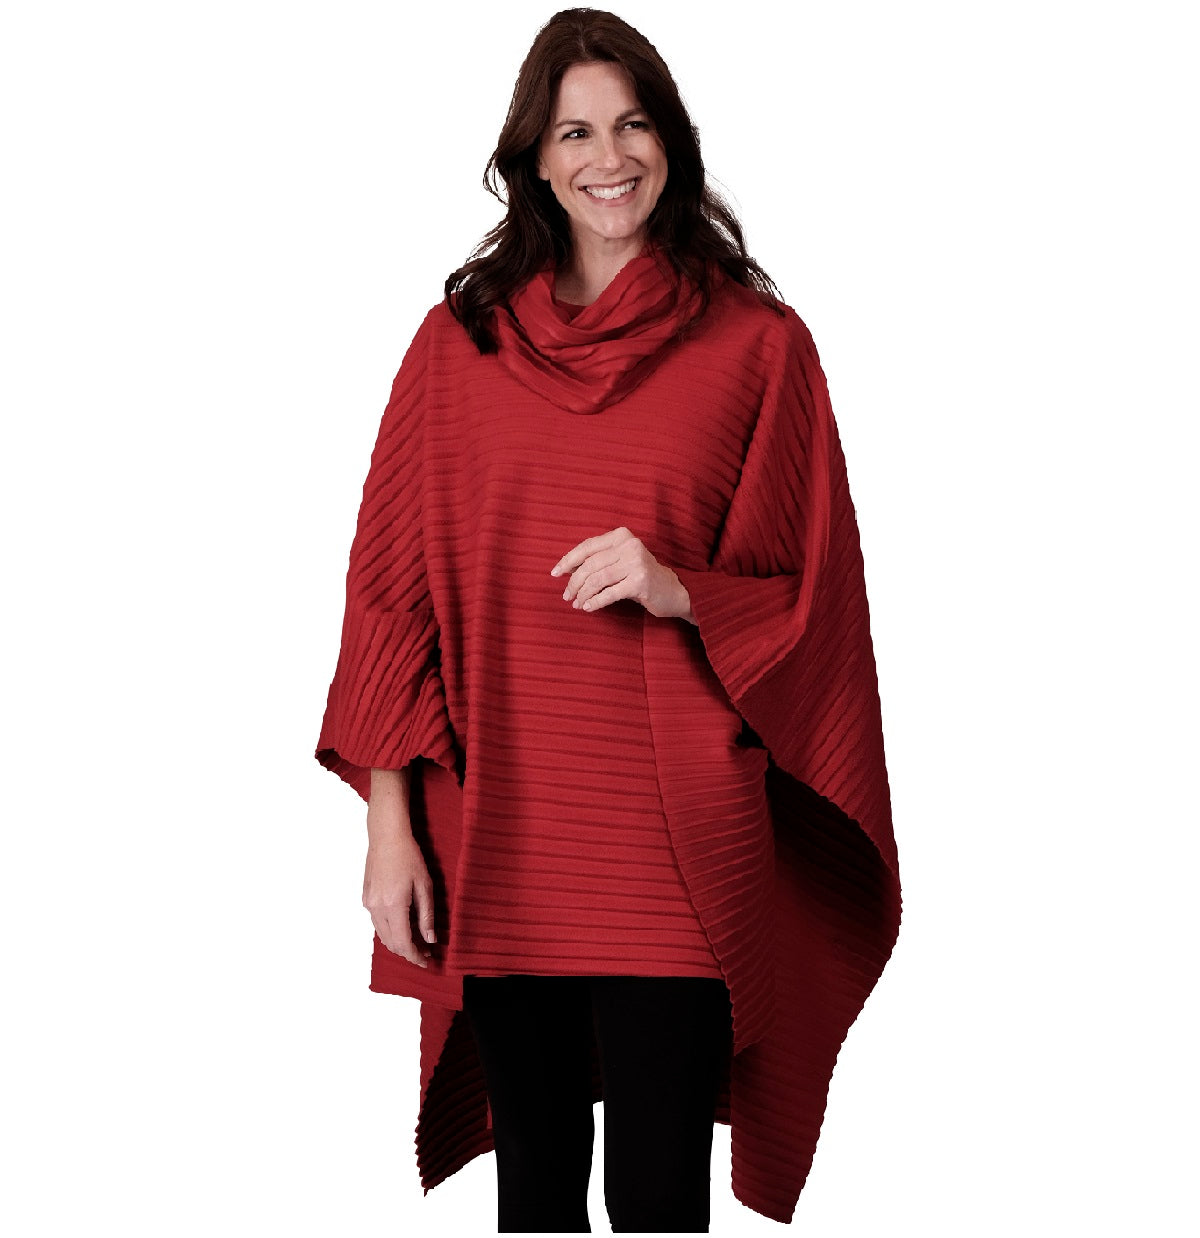 Le Moda Pleated Fleece Poncho with Shawl Collar at Linda Anderson. color_red